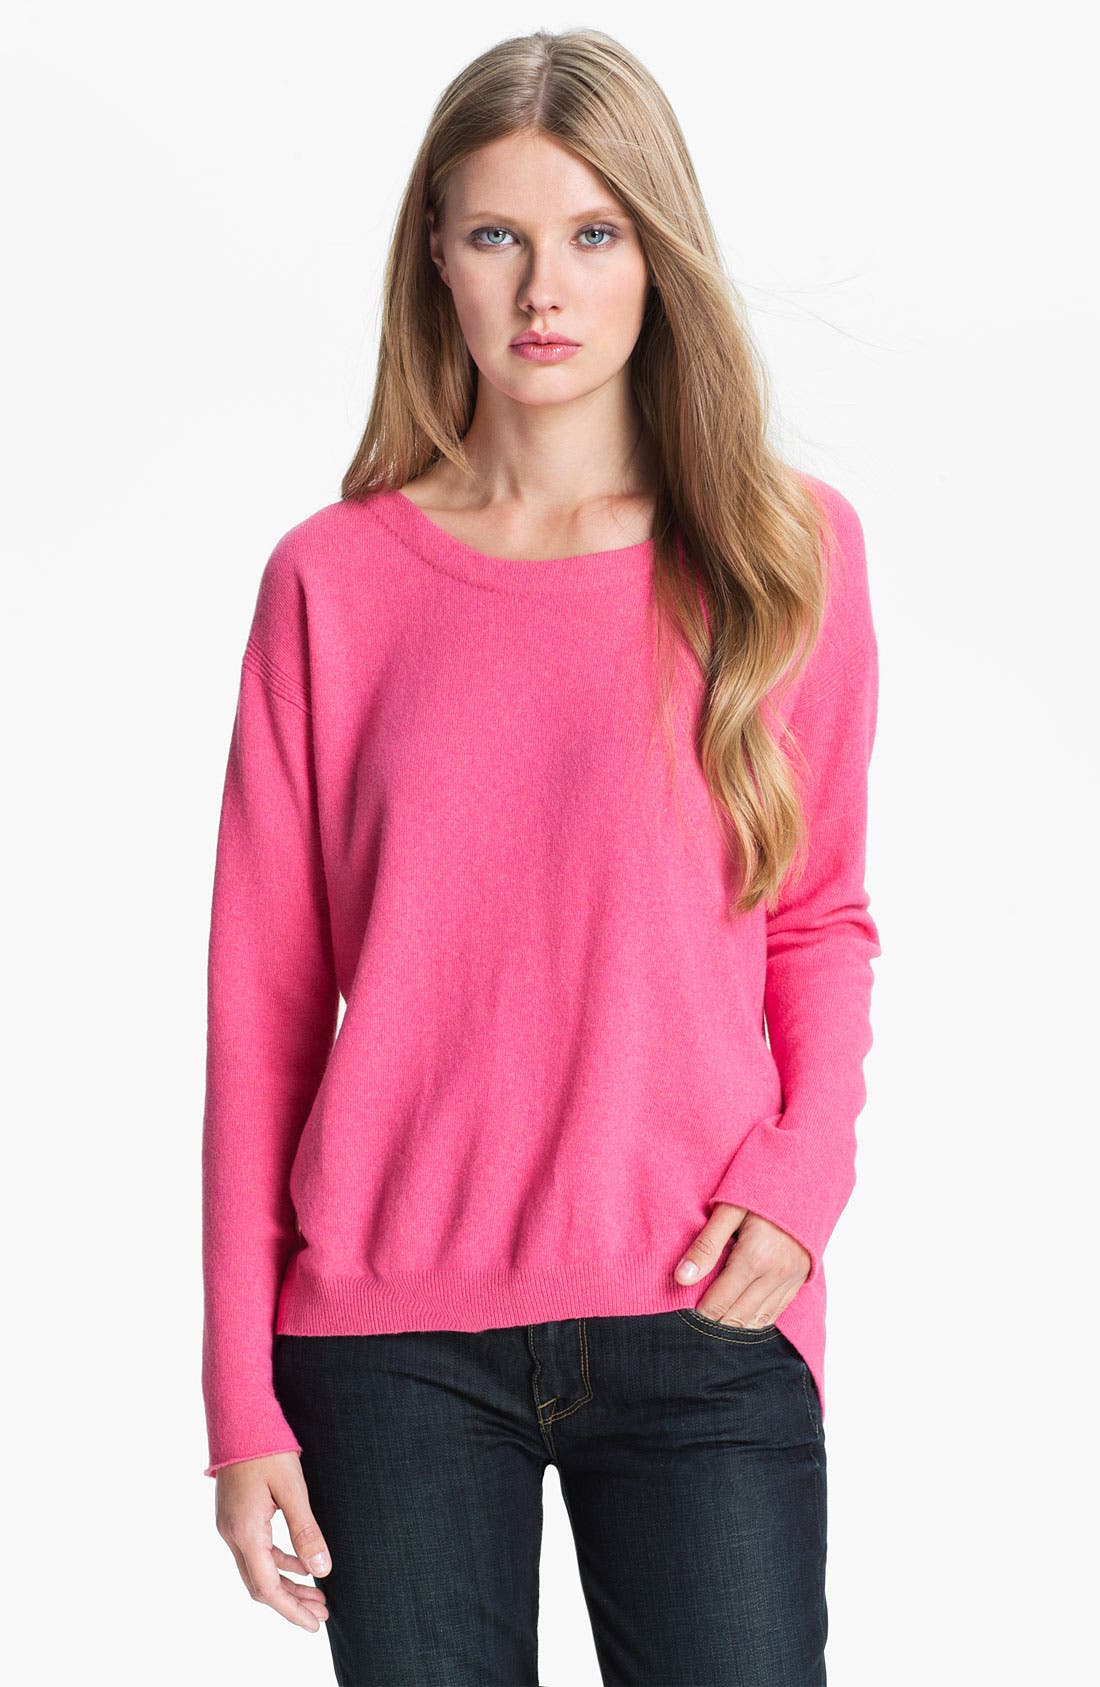 Alternate Image 1 Selected - Diane von Furstenberg 'Garnet' Cashmere Sweater